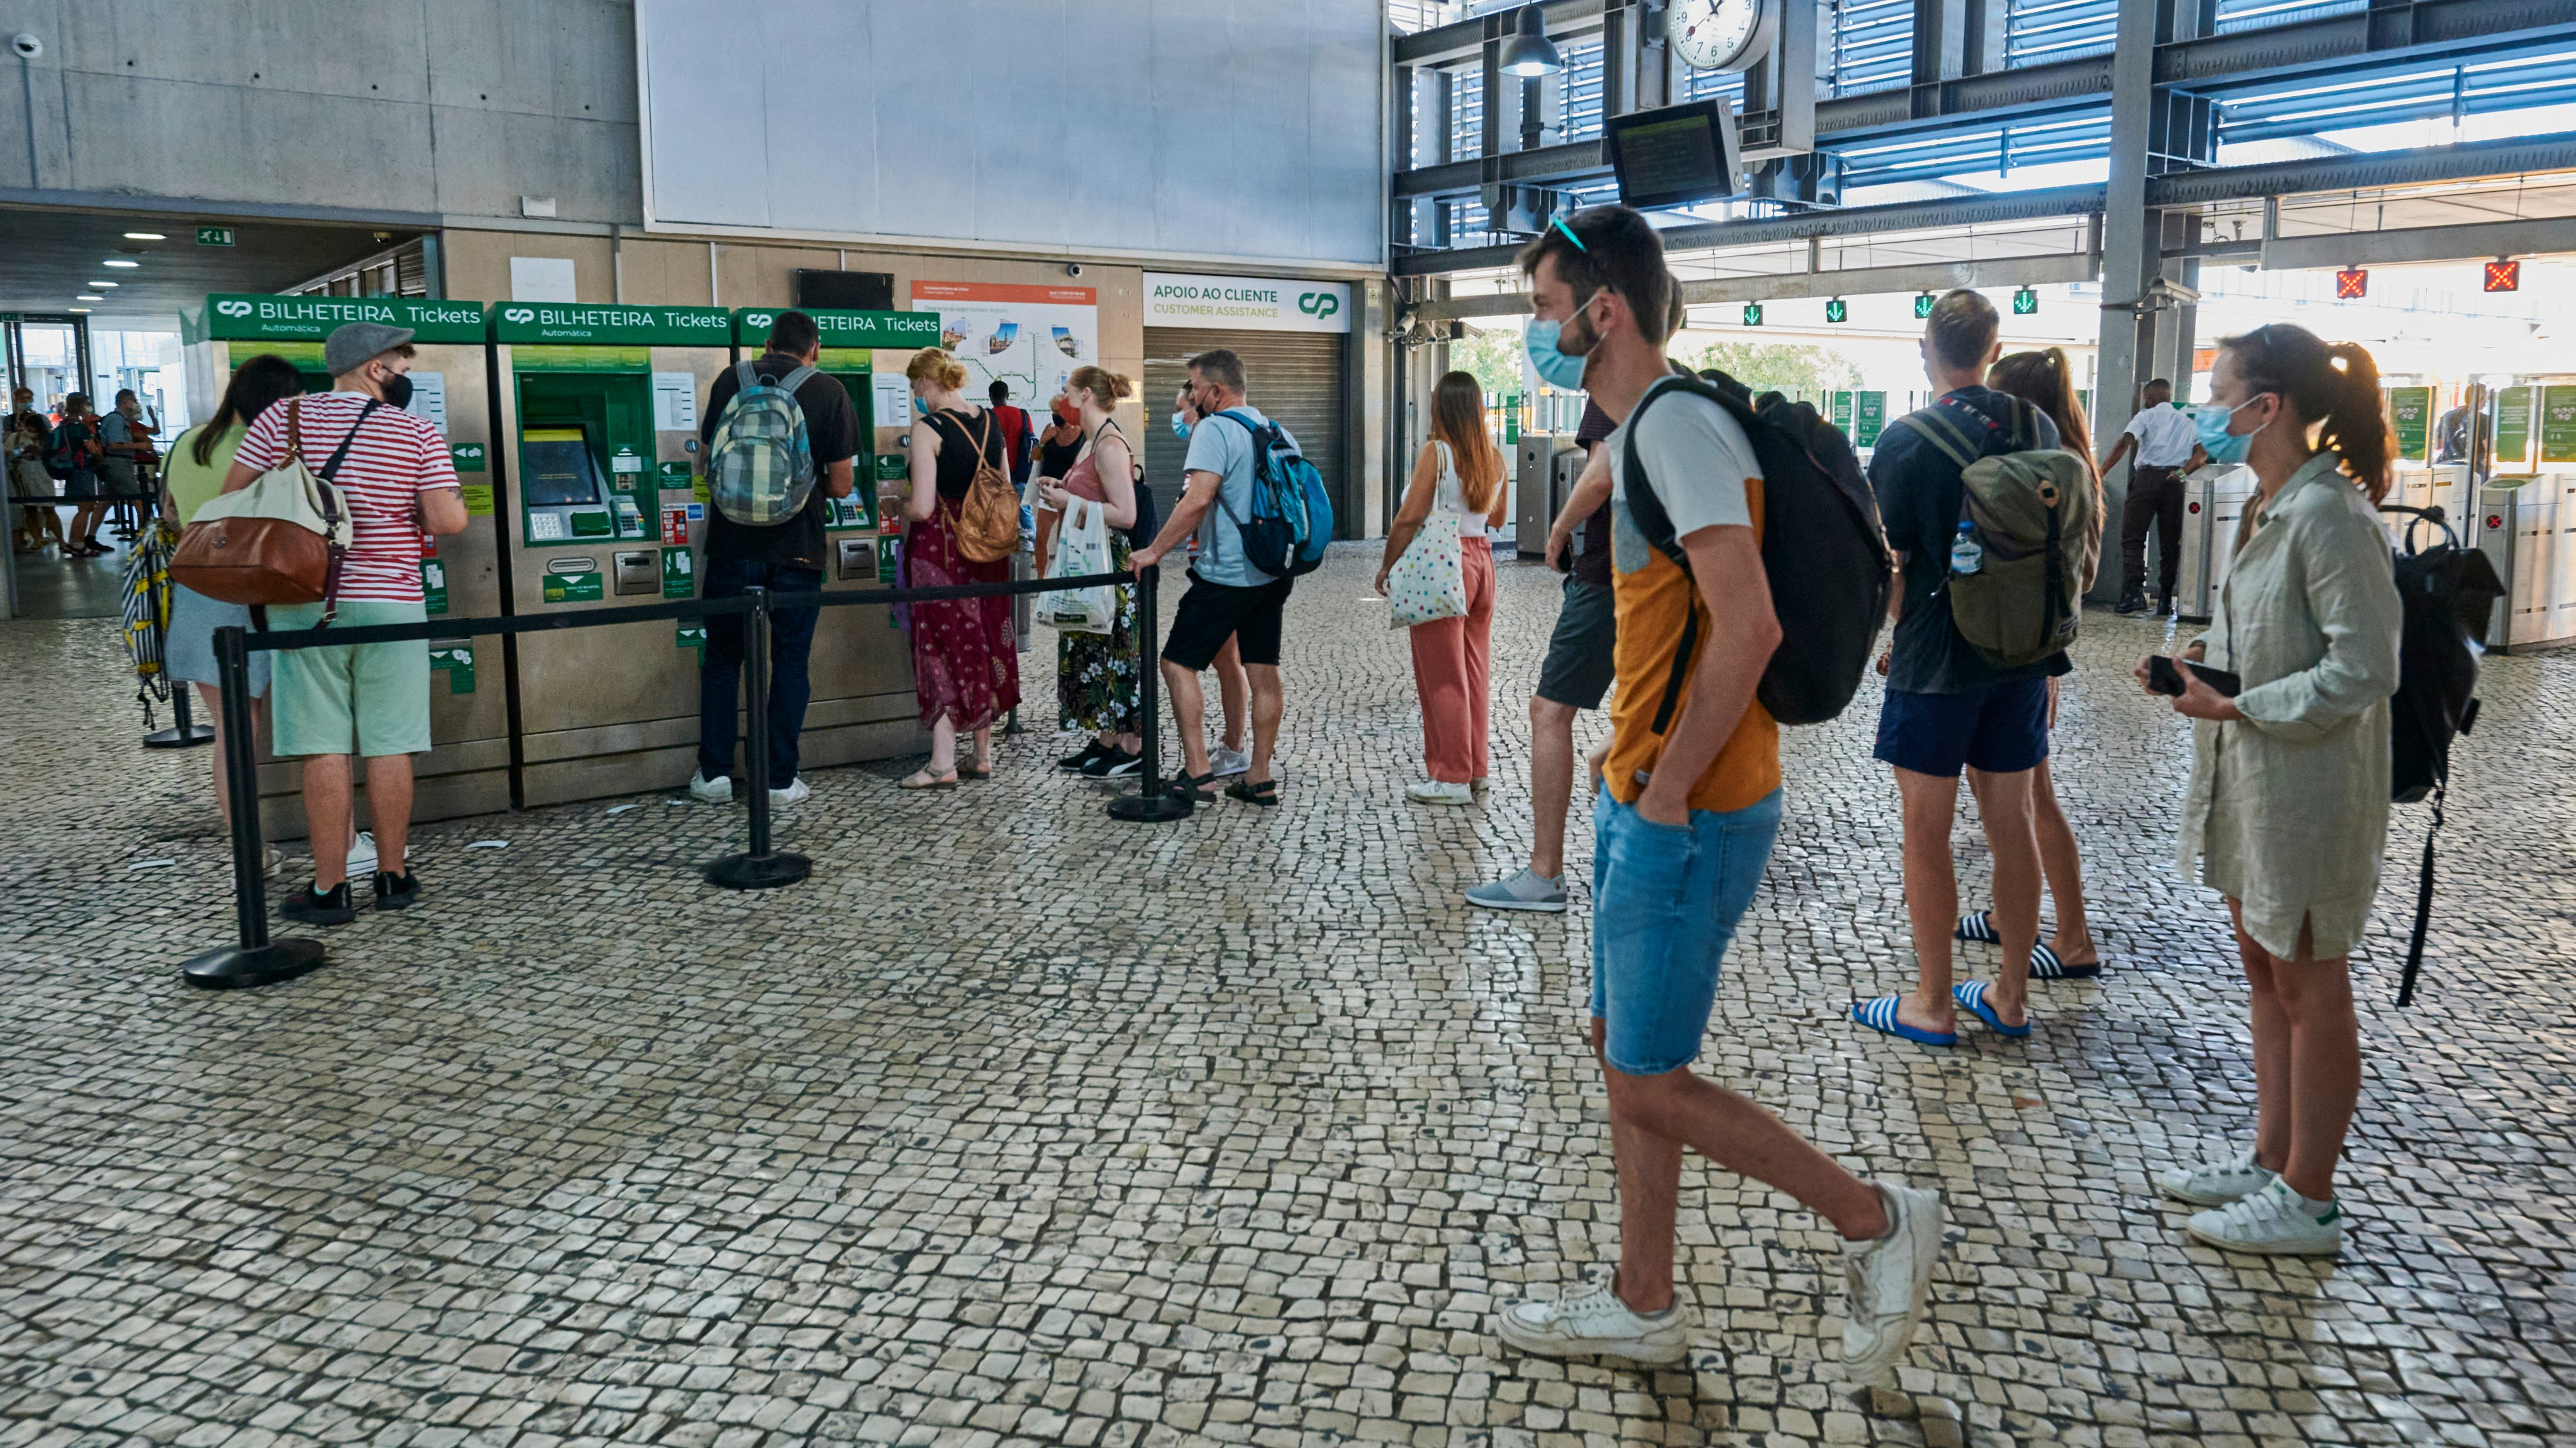 Tourism Is Slowly Picking Up As COVID-19 Pandemic Situation Seems To Be Better In Portugal